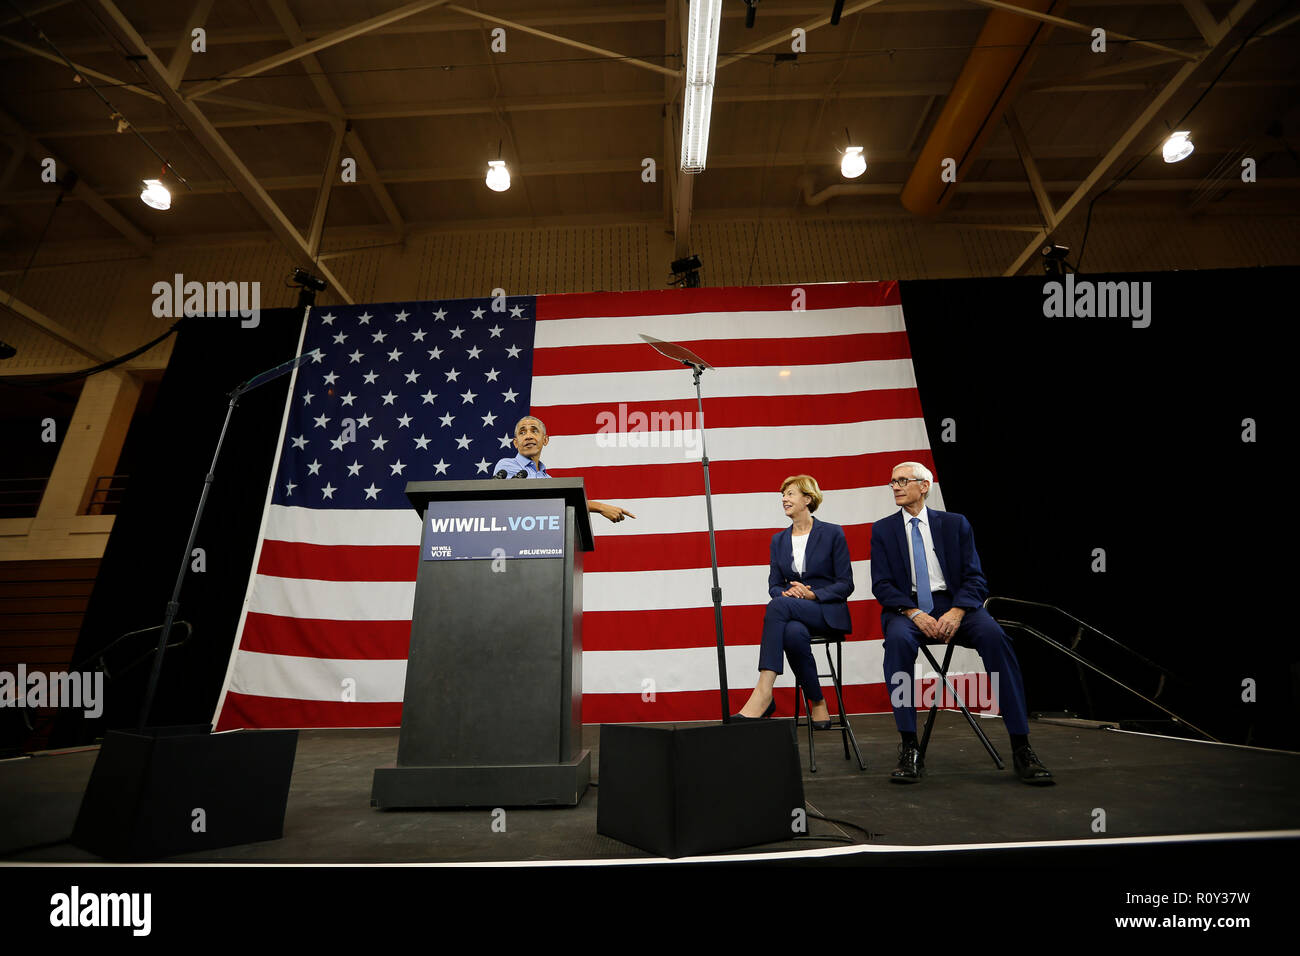 Former U.S. President Obama speaks during a campaign rally for democratic candidates Tony Evers and U.S. Senator Baldwin in Milwaukee, Wisconsin. - Stock Image